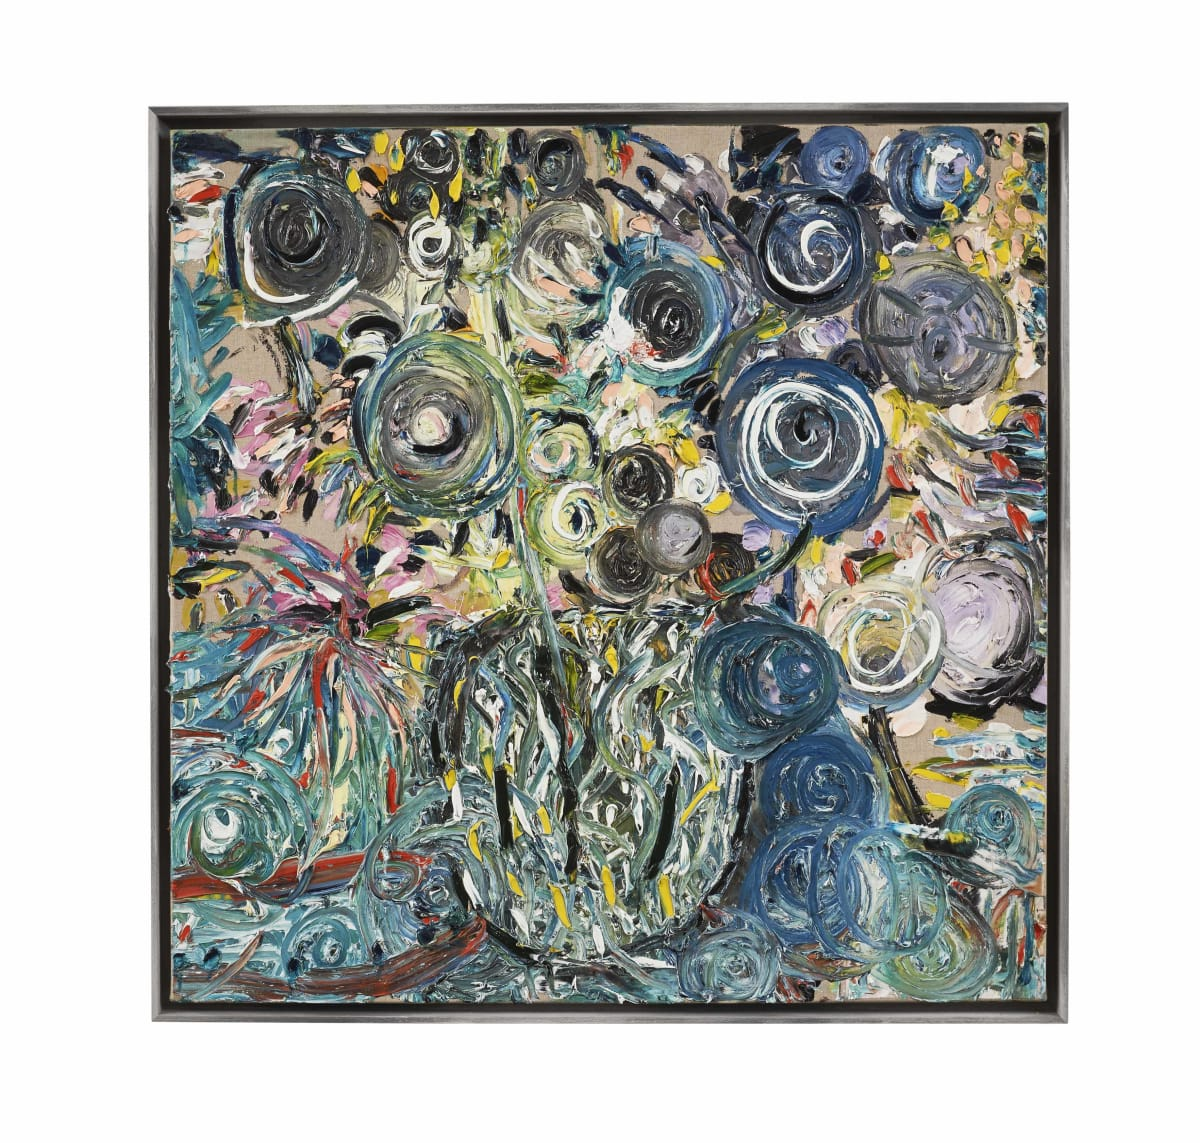 Maarten Vrolijk, Flowers in blue, 2017